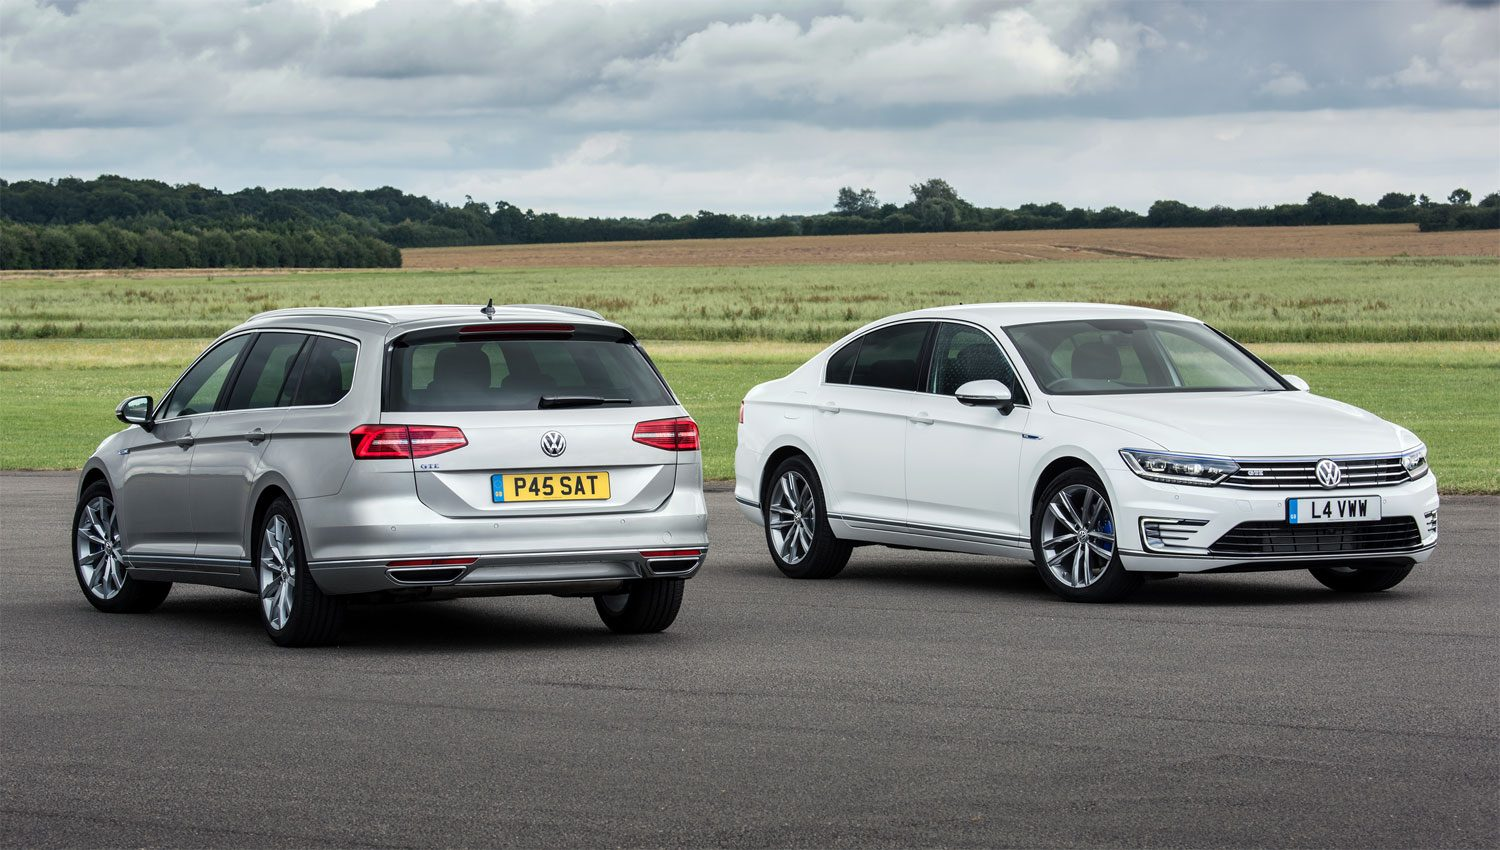 Volkswagen Passat GTE in saloon and estate versions